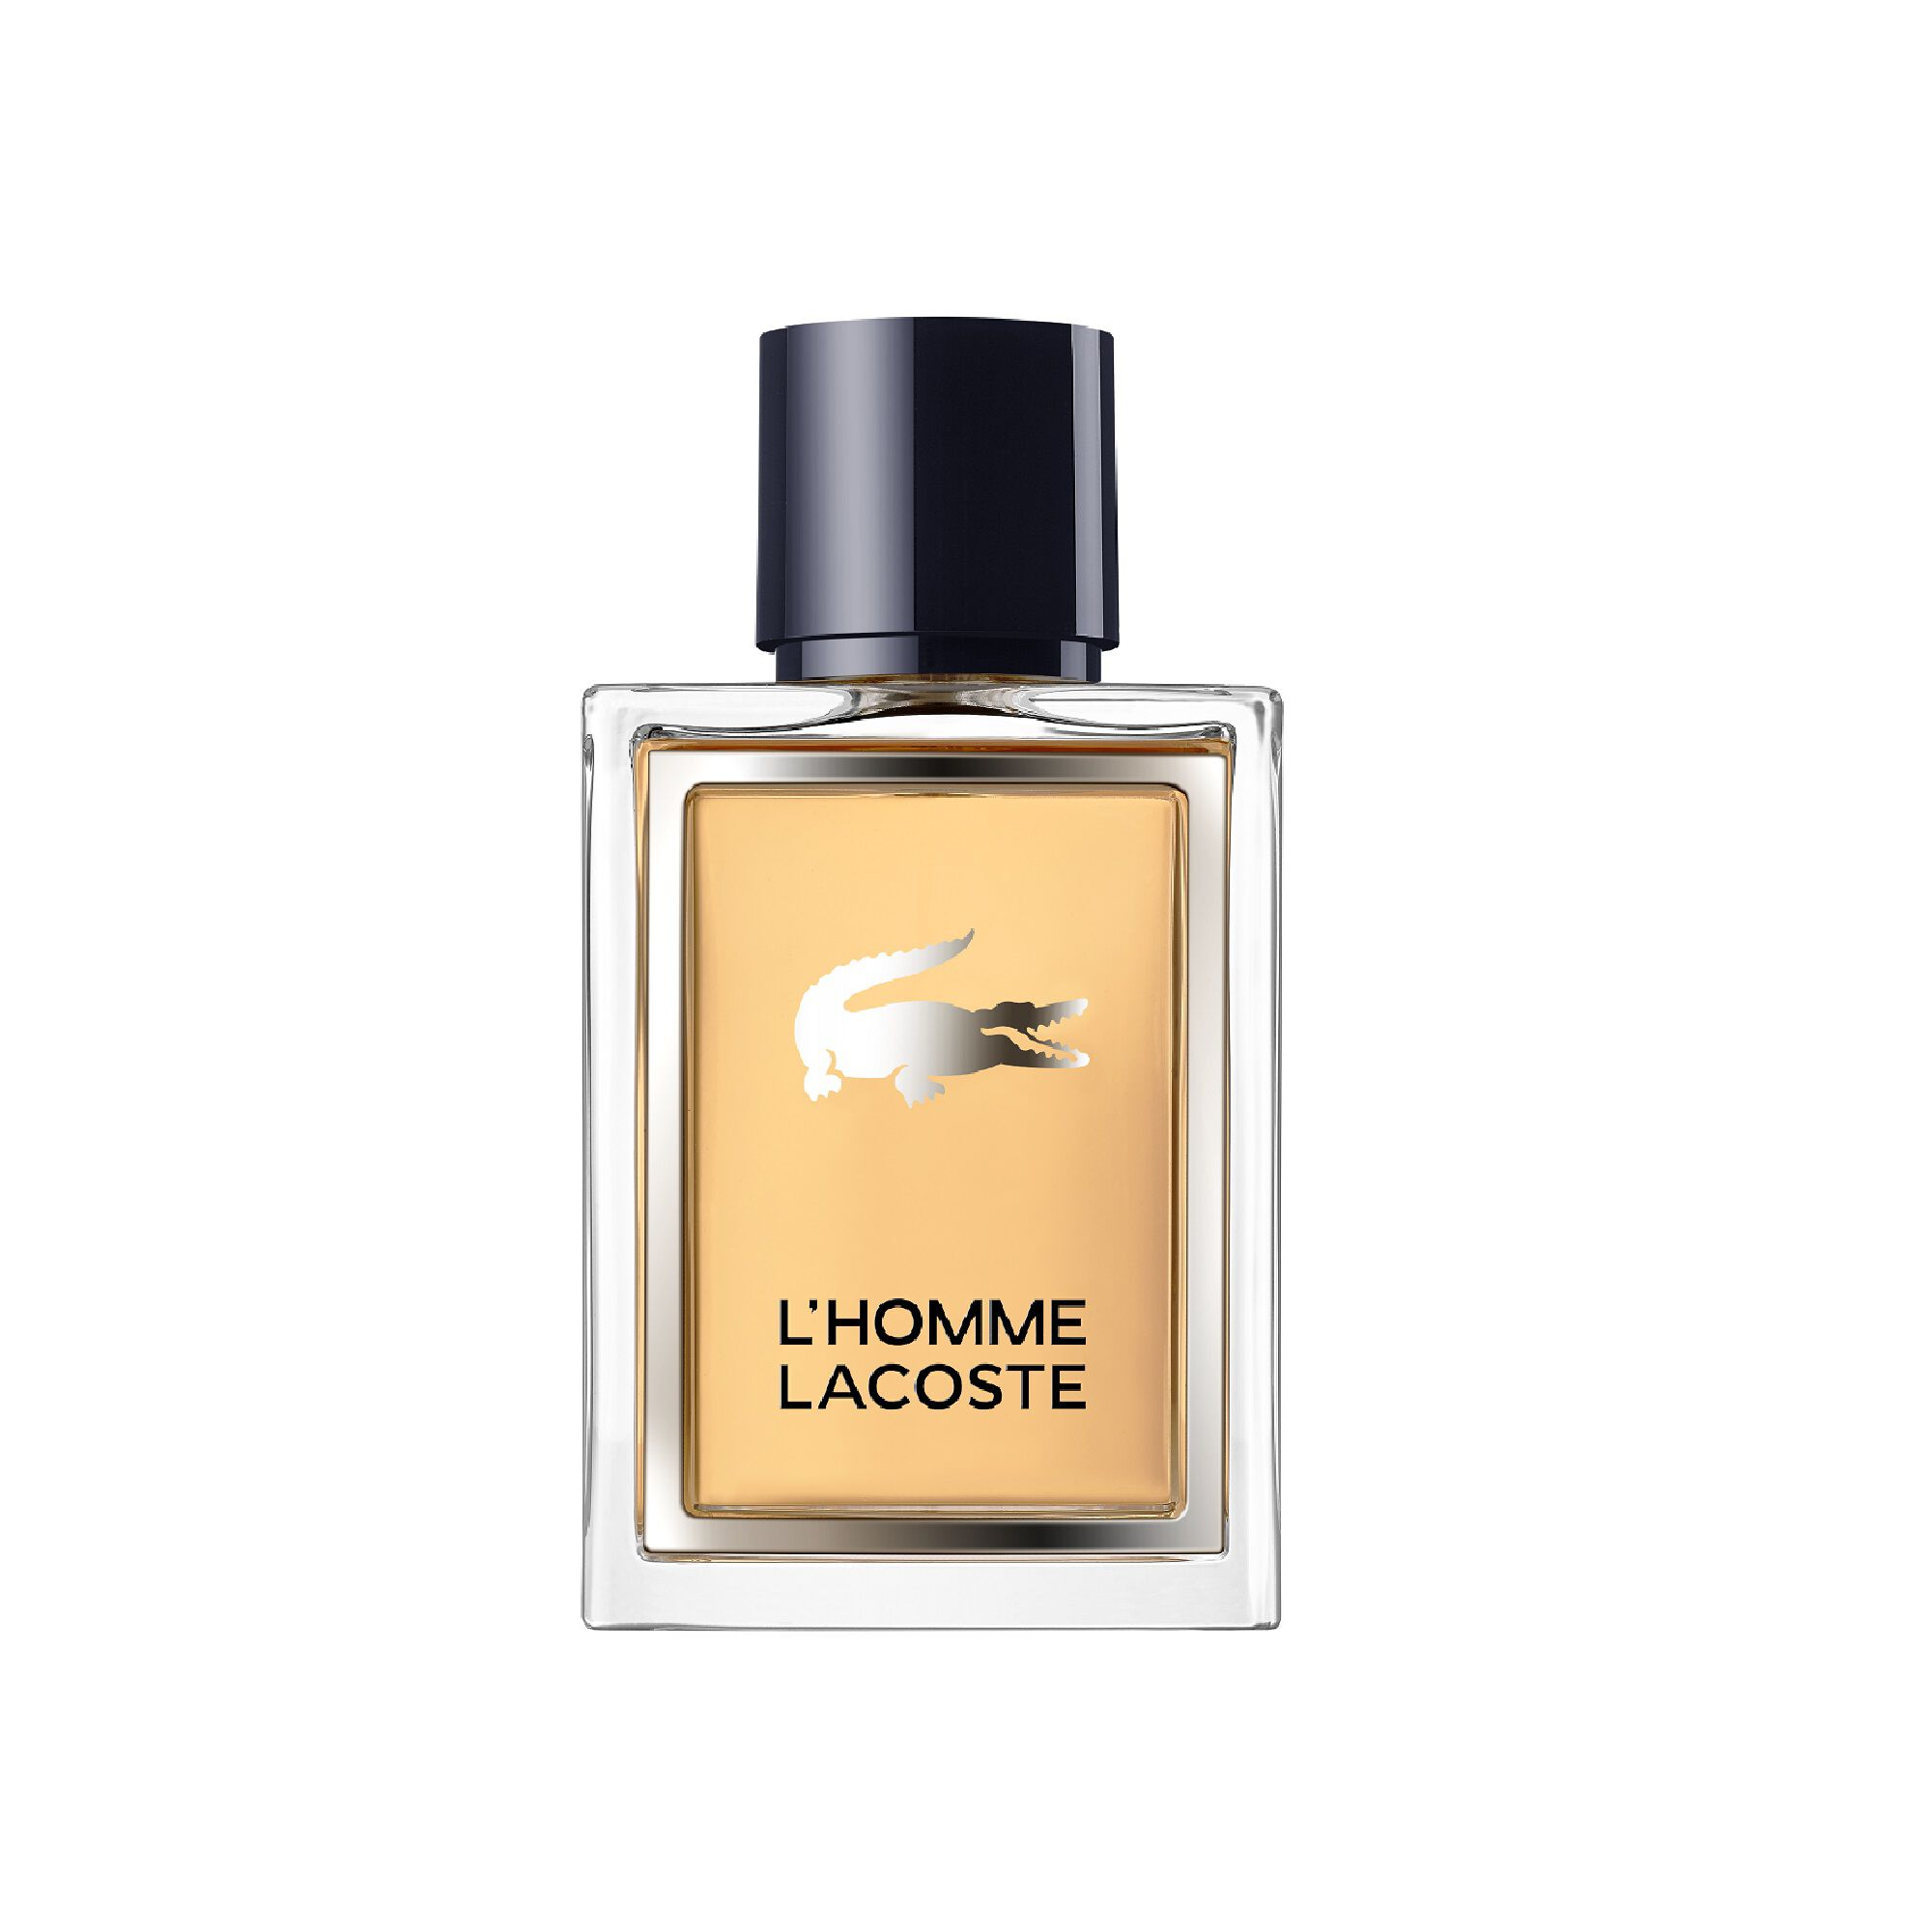 lacoste shoes original vs fake perfumes may contain alcohol svg